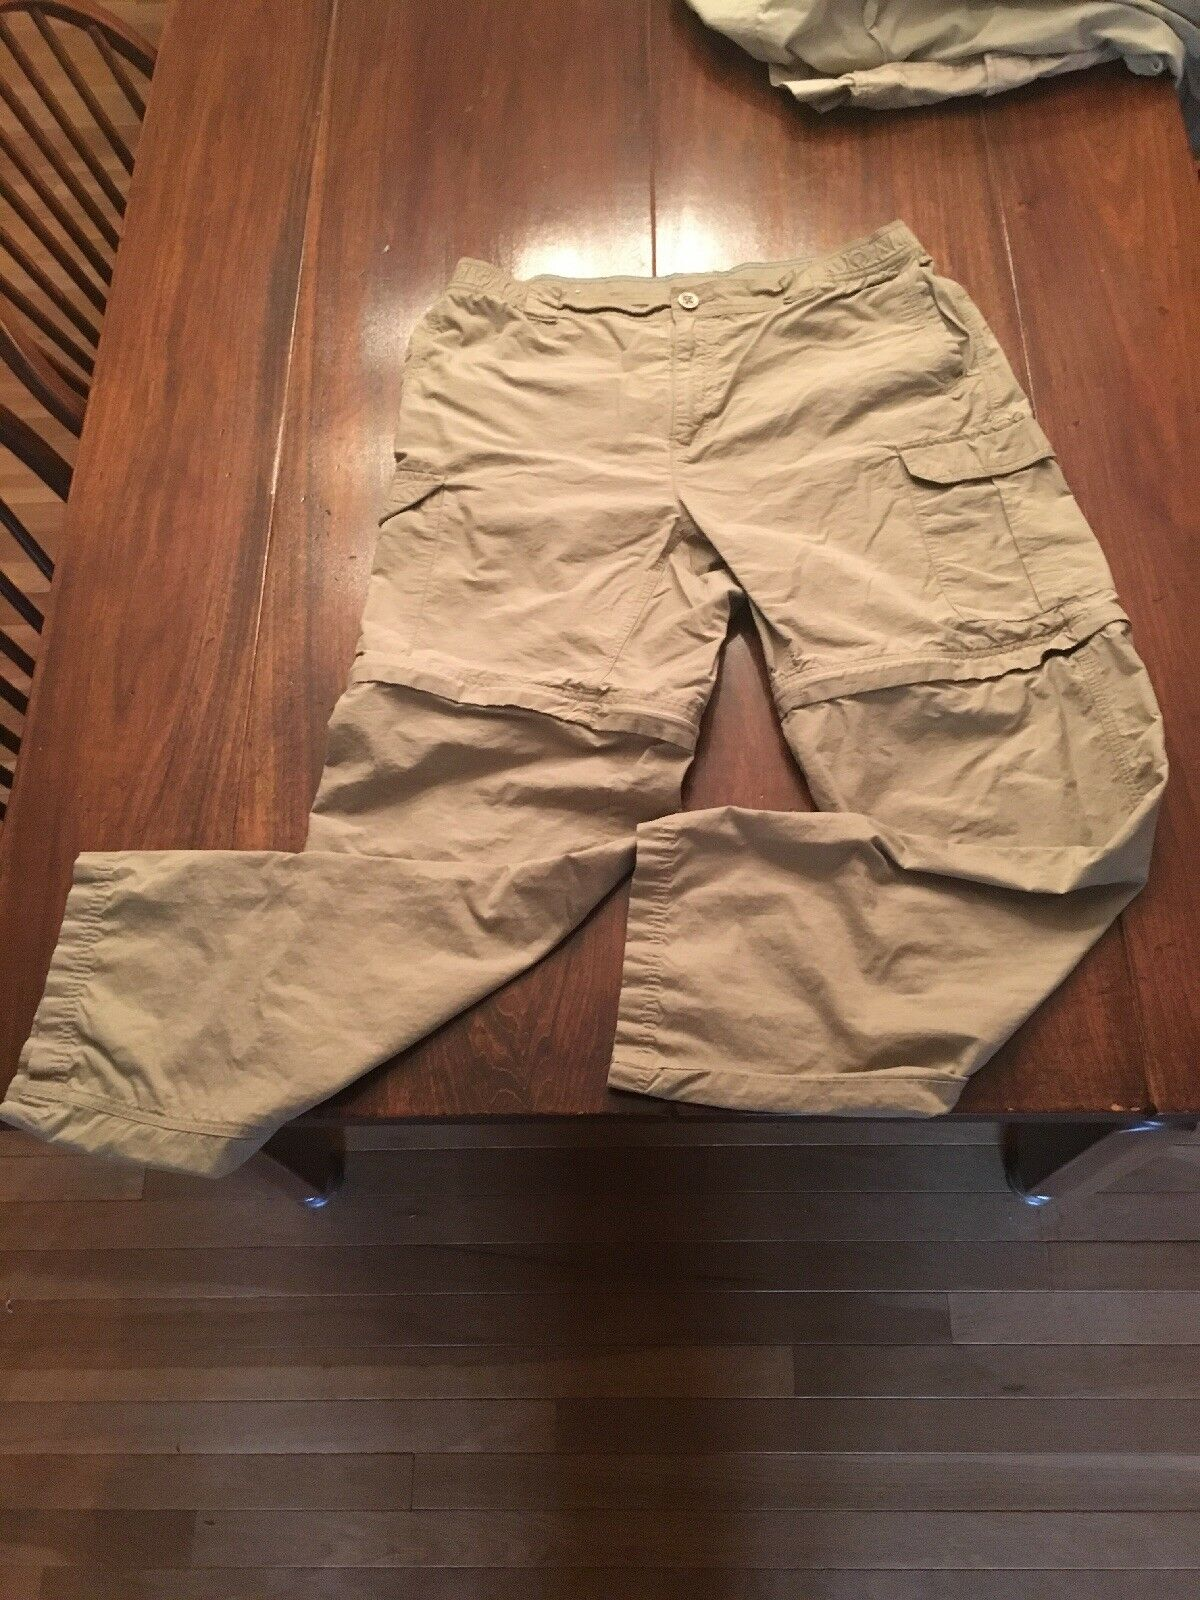 COLUMBIA CONgreenIBLE PANTS MENS SIZE LARGE 32 IIMSEAM ELASTIC WAIST CARGO